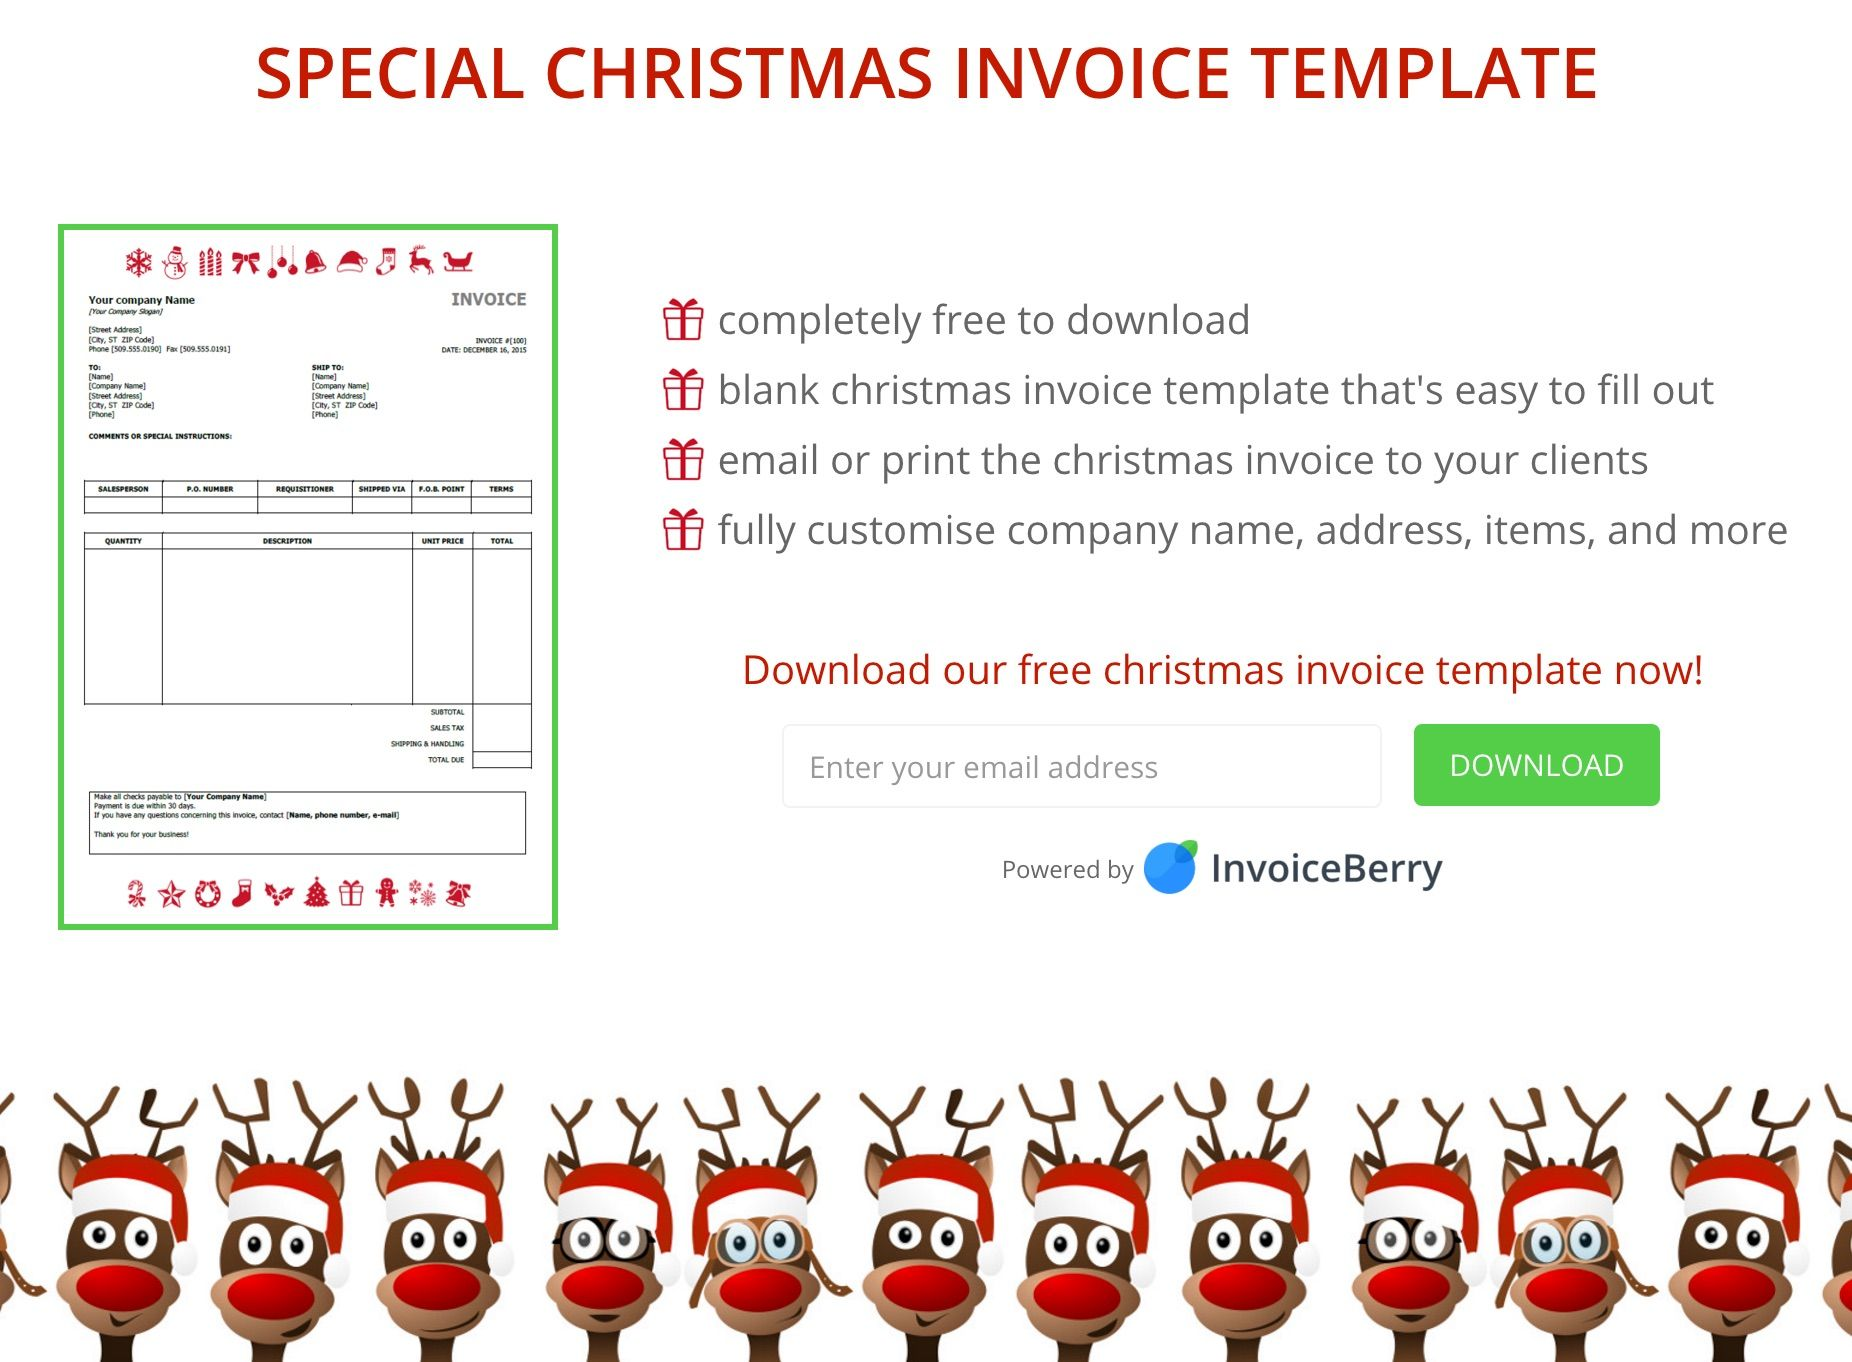 our christmas invoice template now get your invoices our christmas invoice template on and start sending invoices to your clients immediately check out our trial today